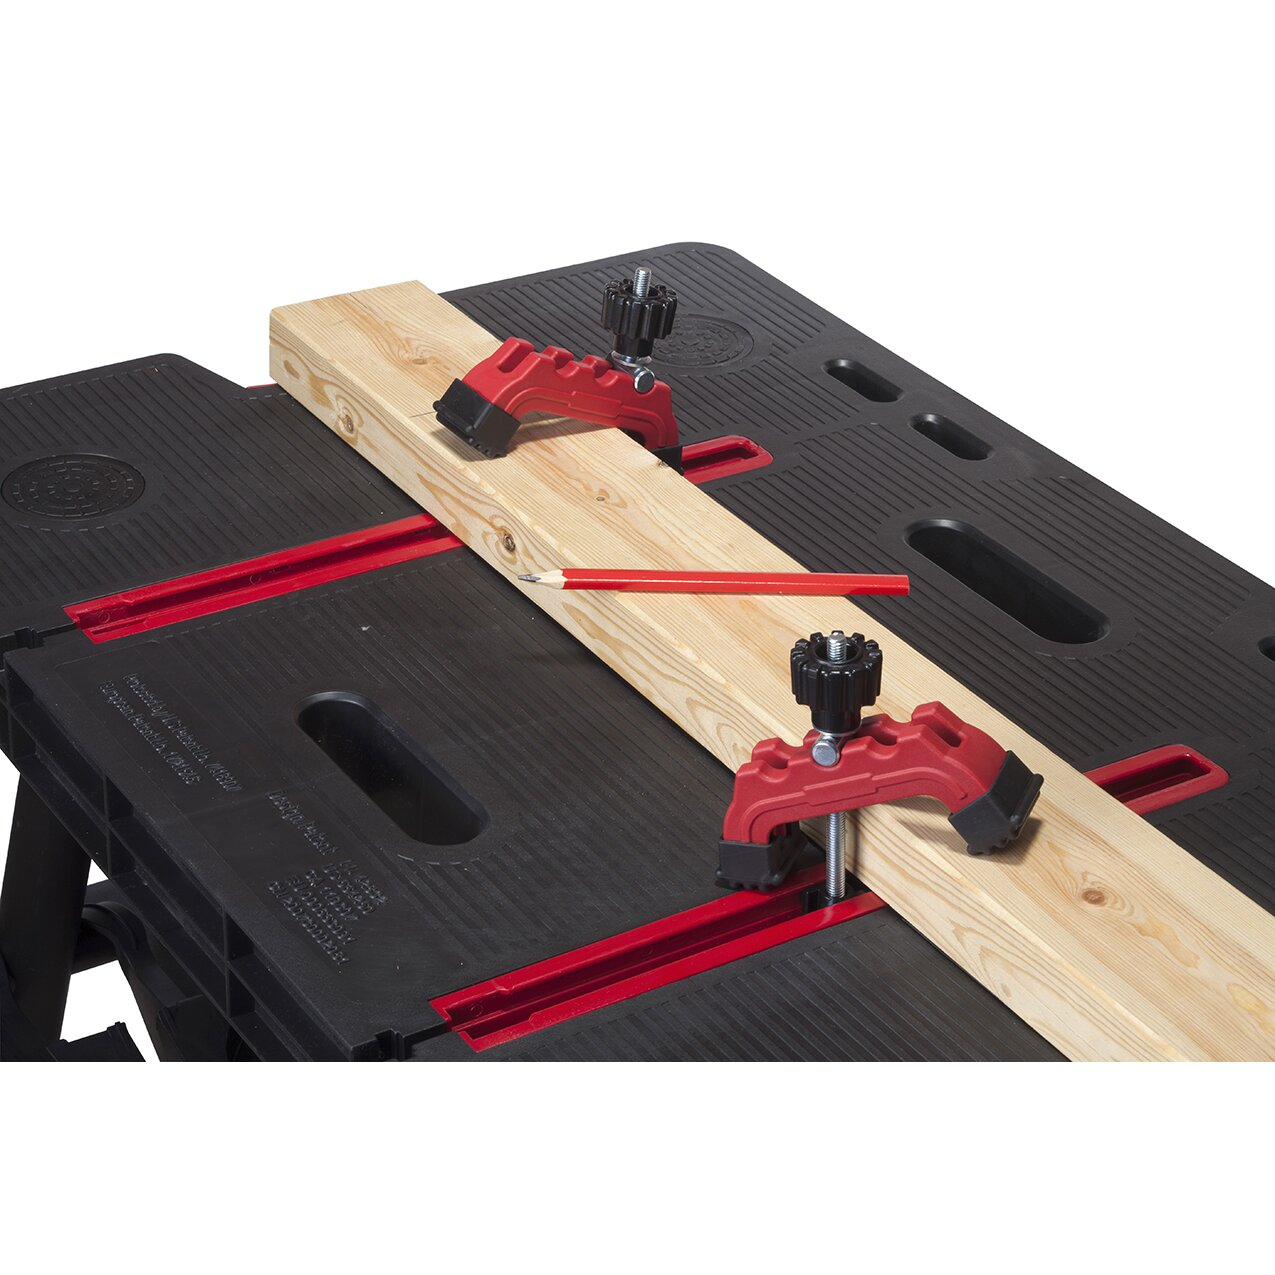 Keter Folding Work Bench Review 28 Images Keter